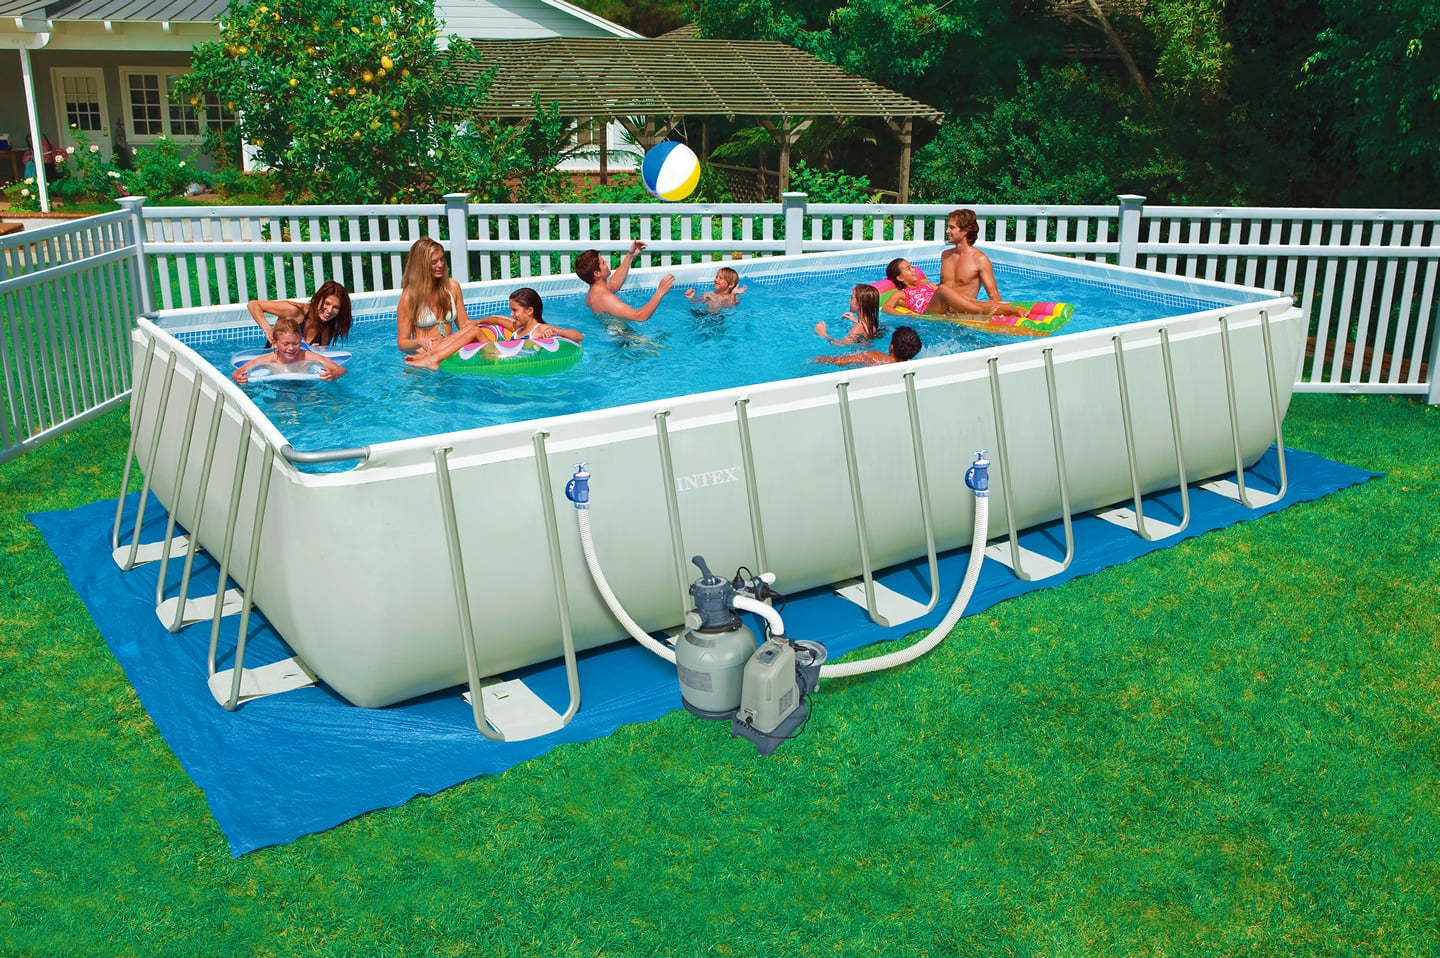 Promo piscine intex for Piscine tubulaire rectangulaire intex pas cher